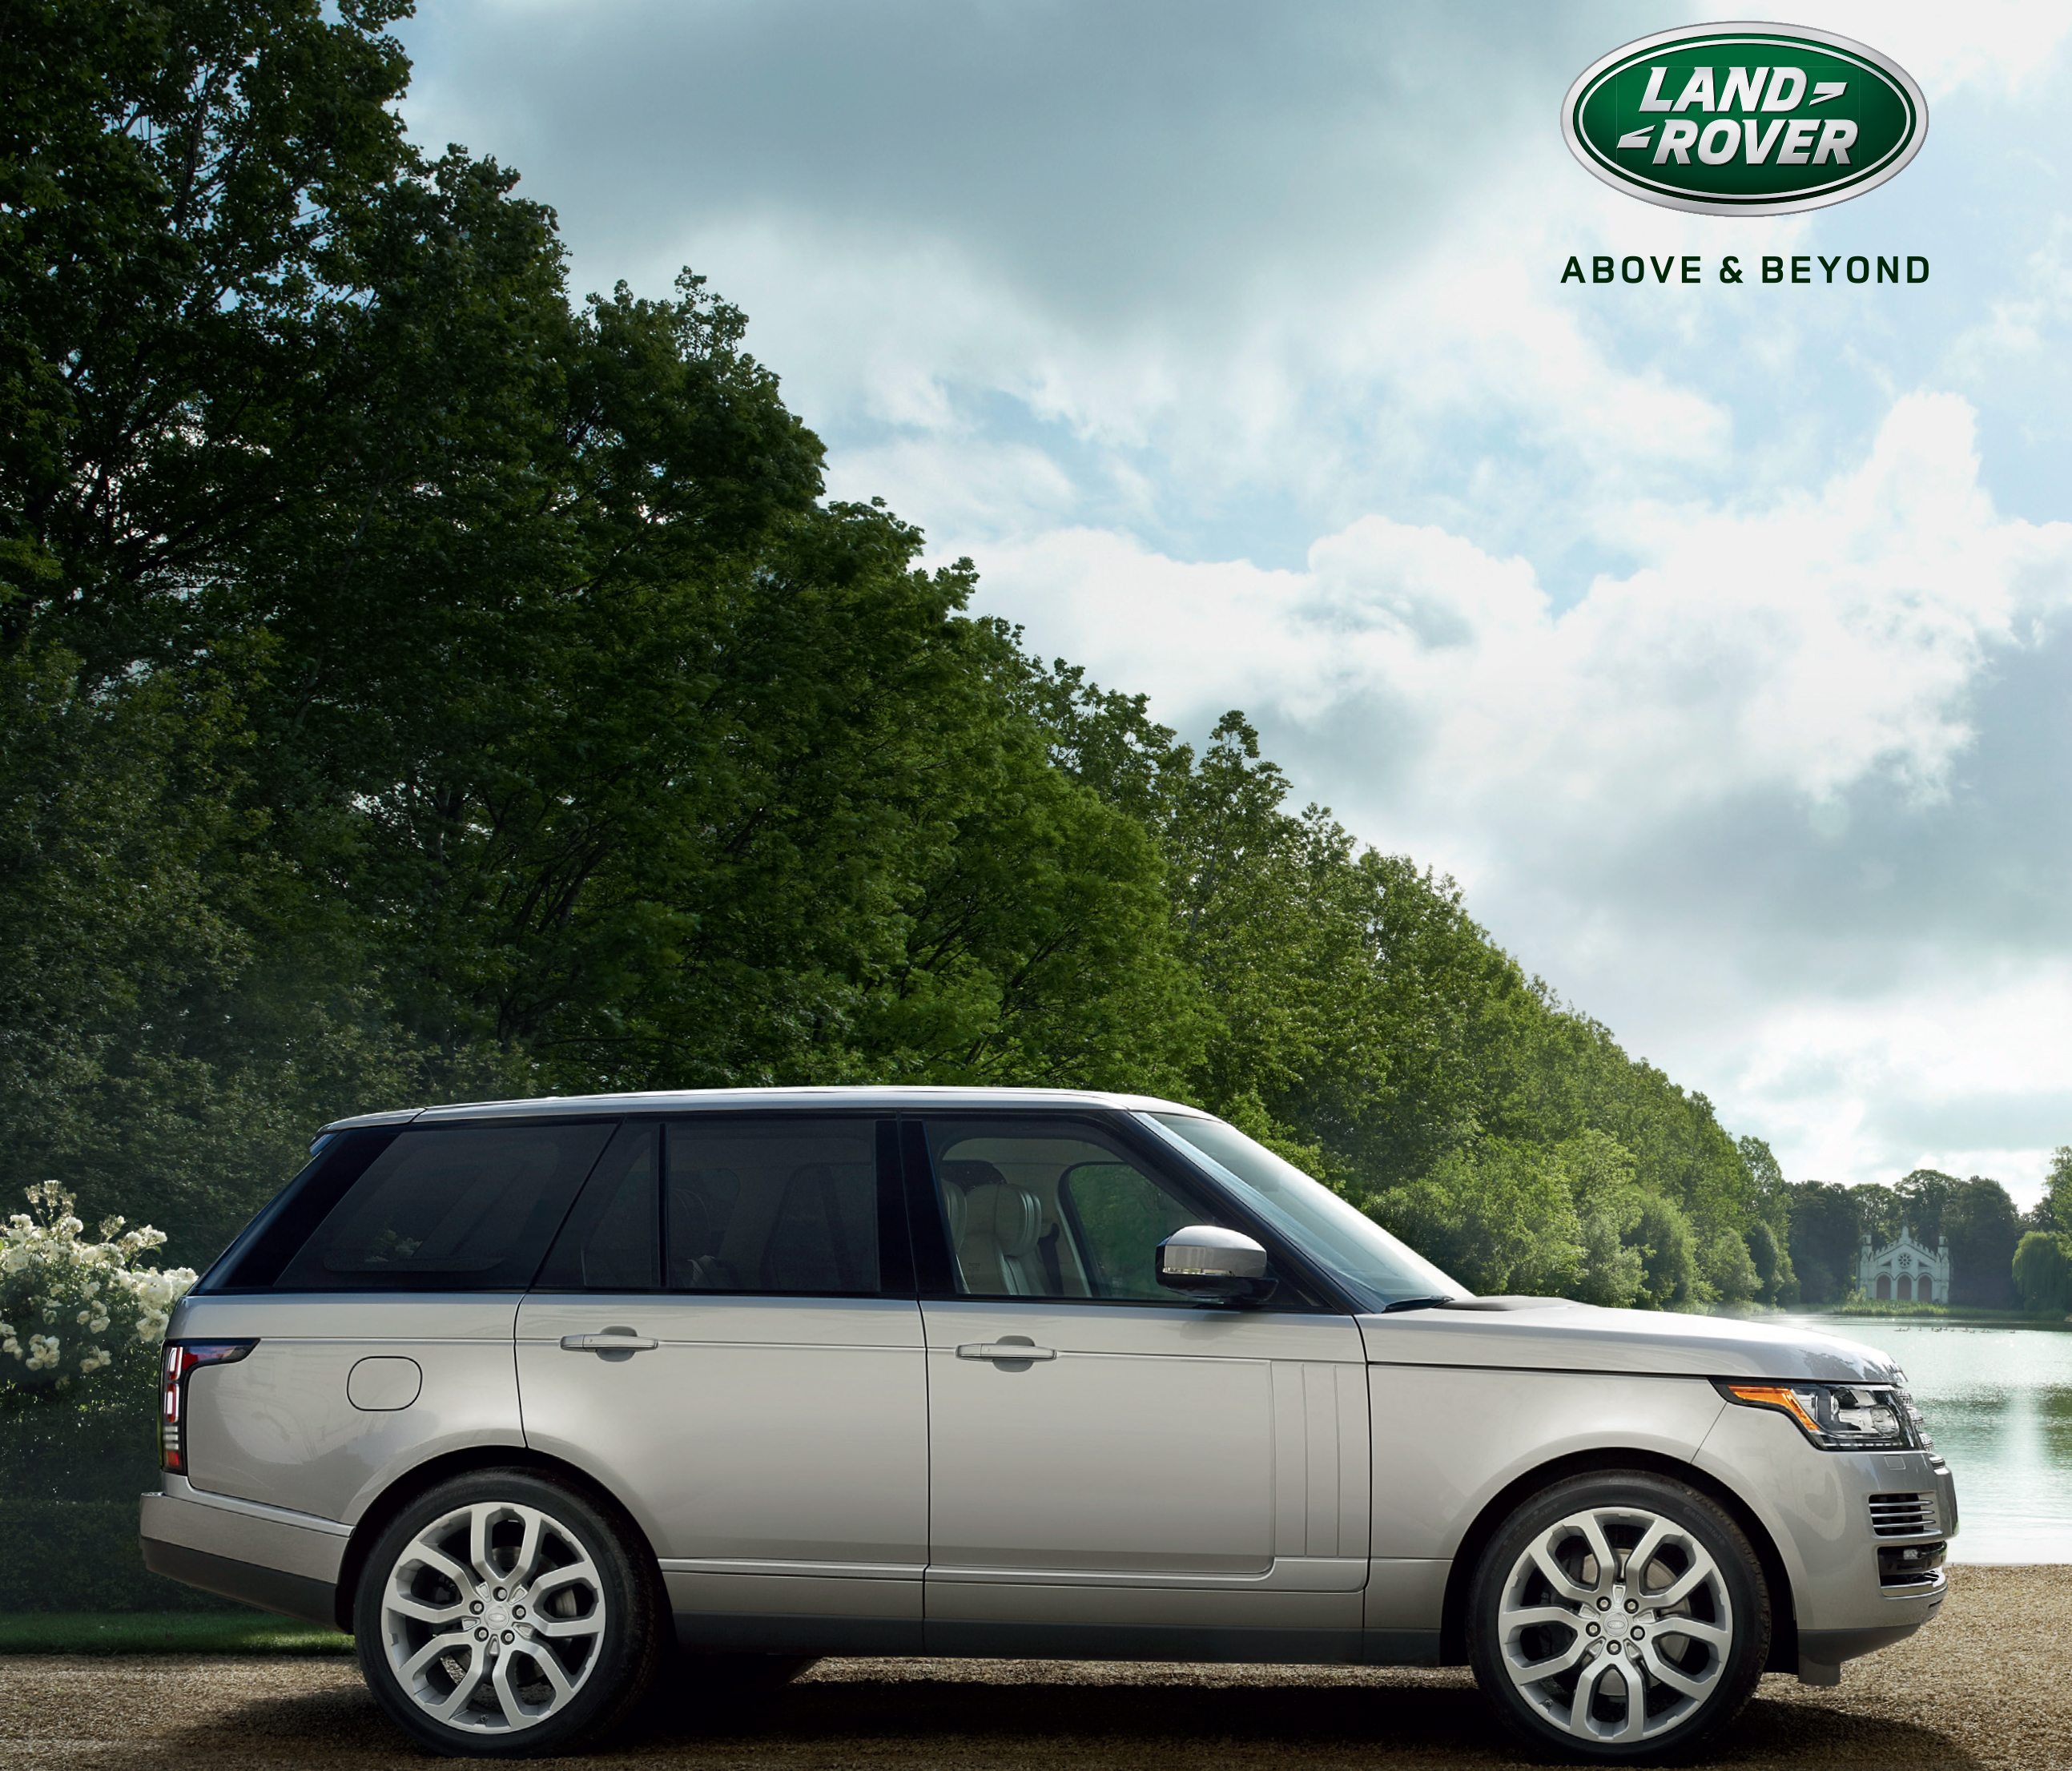 Land Rover Goes Eco-Friendly